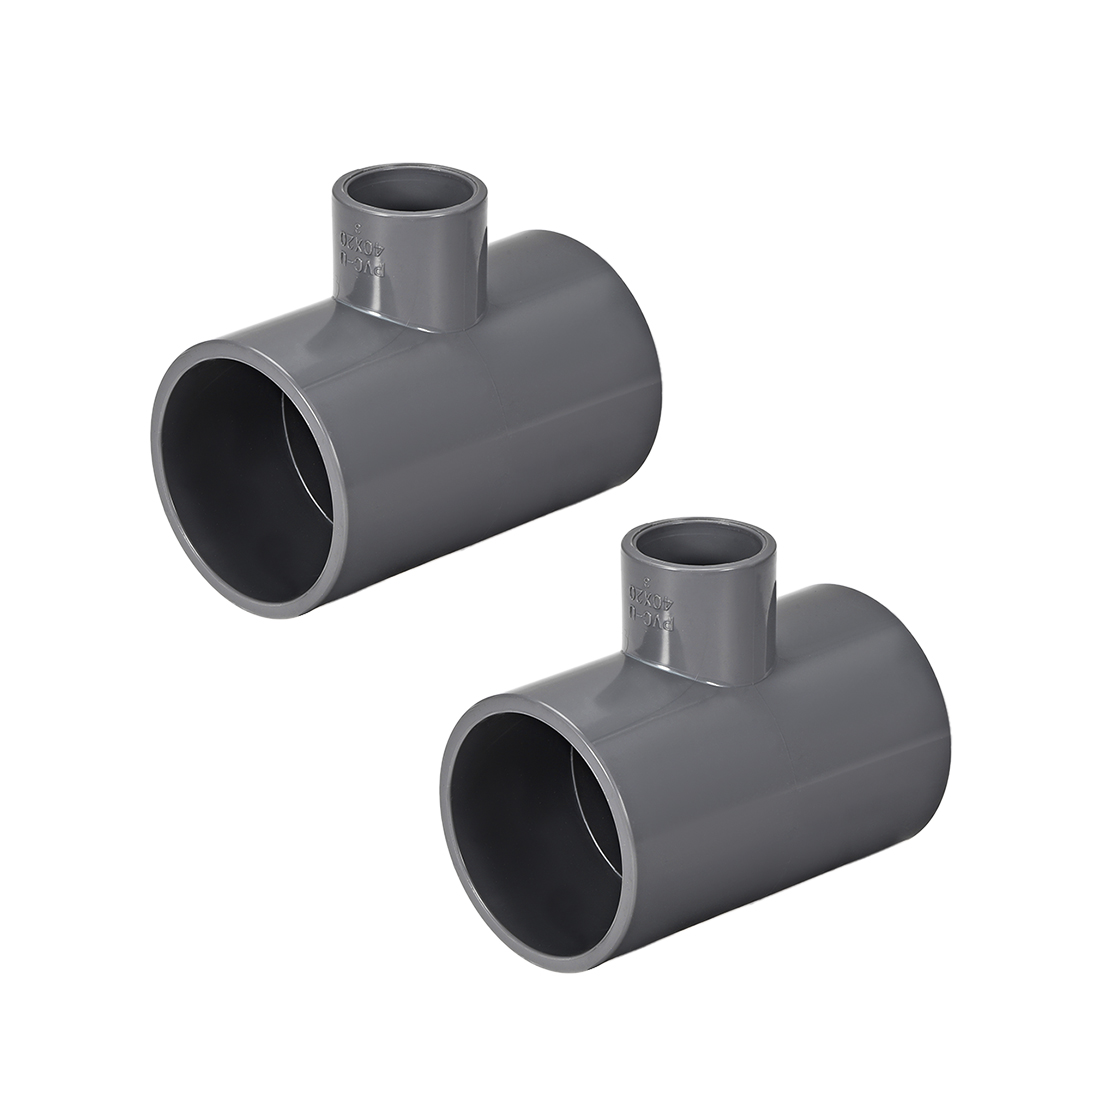 PVC Pipe Fitting Tee 401-Series Gray 3/4-inch X 1-1/2-inch Socket 2pcs